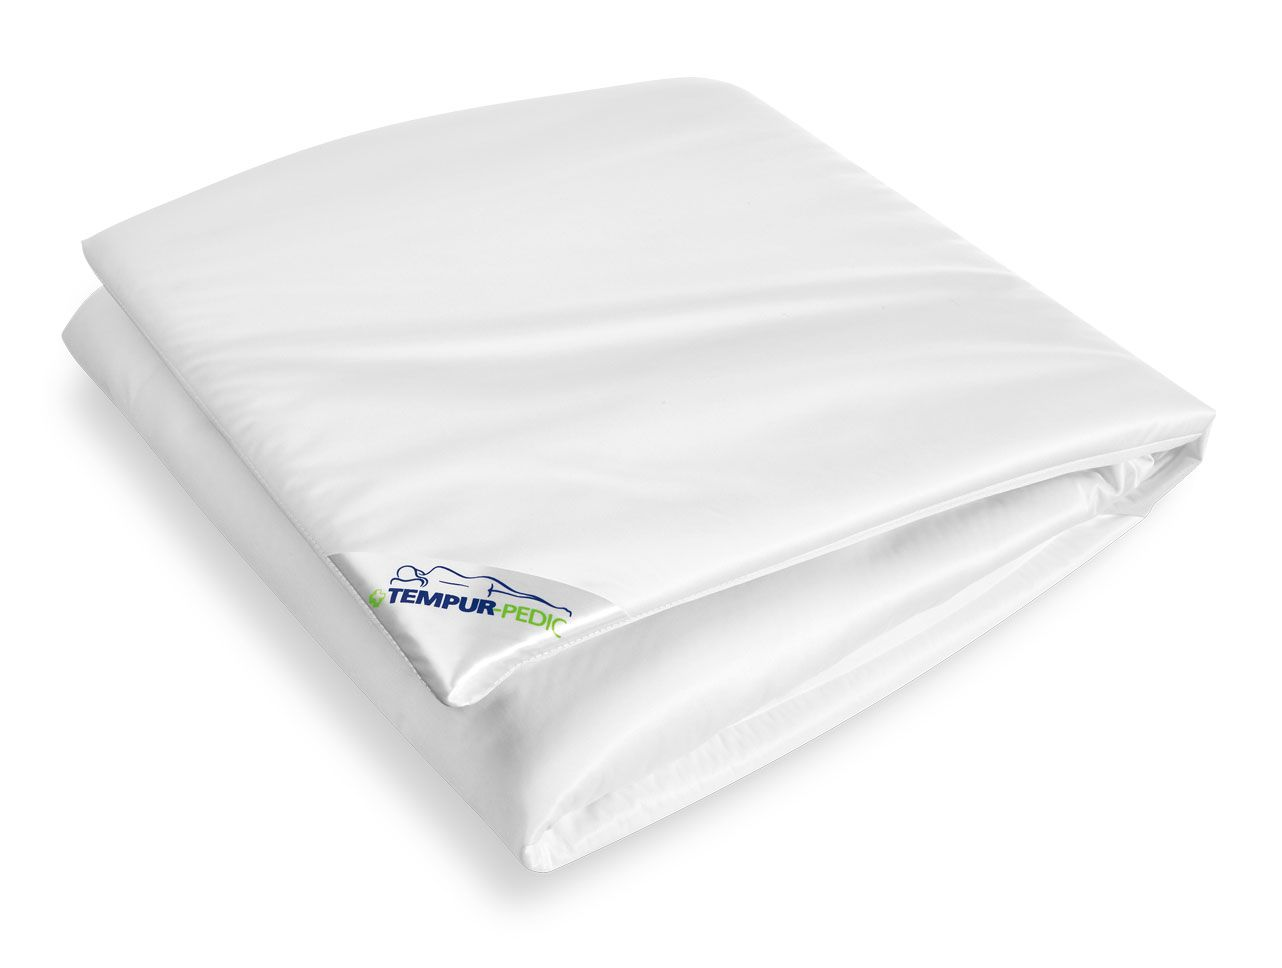 How To Use A Tempur Pillow